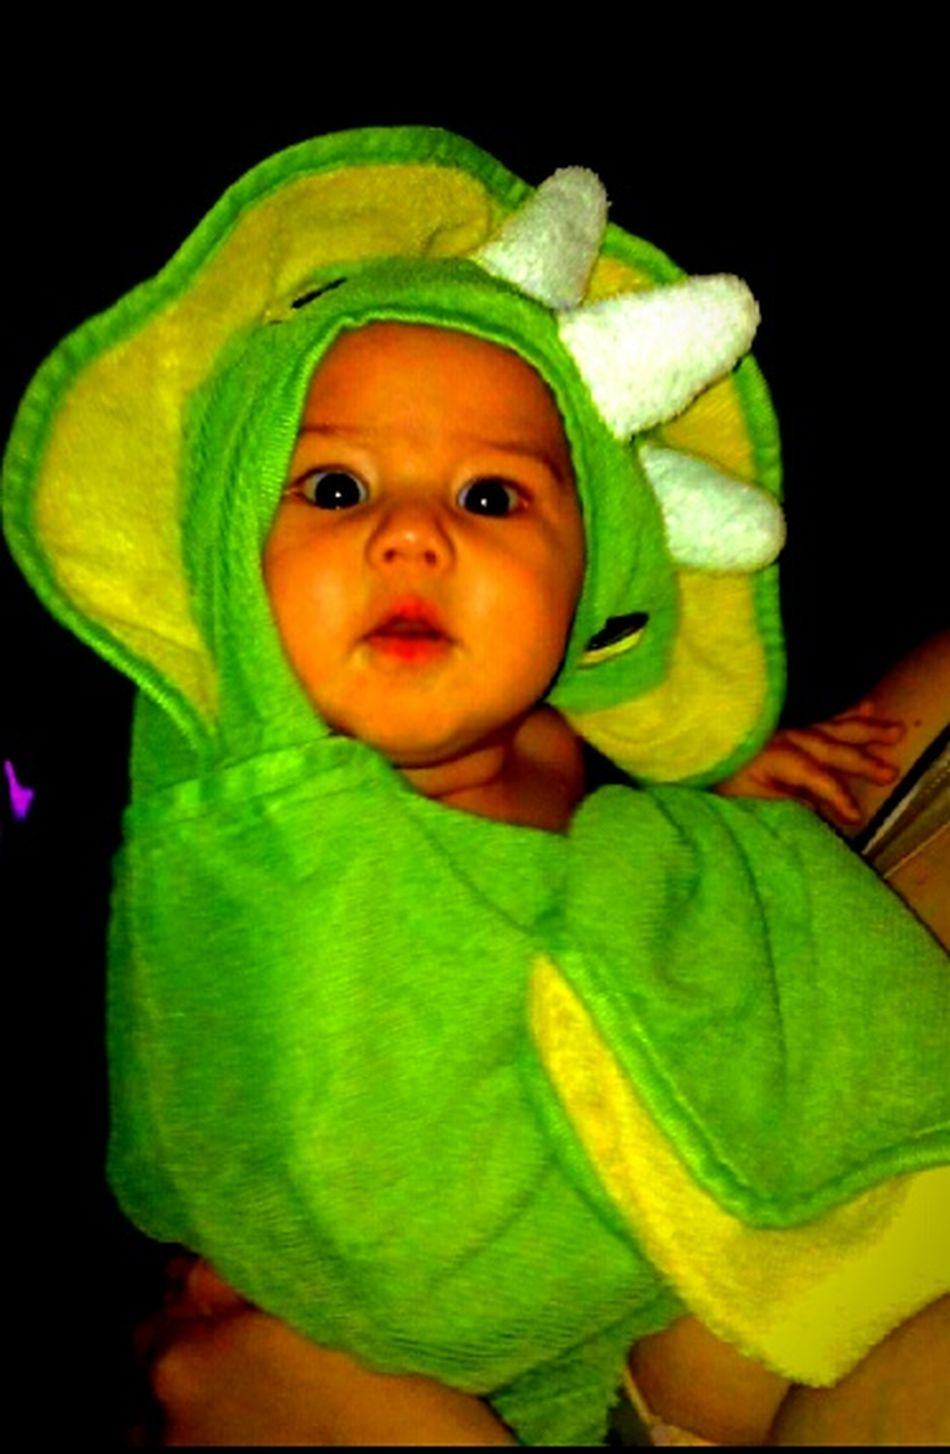 Lola Nia Bathed Towel Animal All Cleaned Up  Baby Girl Cuddle Time Baby Babies Only Cute Innocence Green Color Looking At Camera Portrait Childhood Babyhood Indoors  Close-up Black Background One Person People Spring Evening Original Experiences Just For A Minute Getty Images Eyeem Market